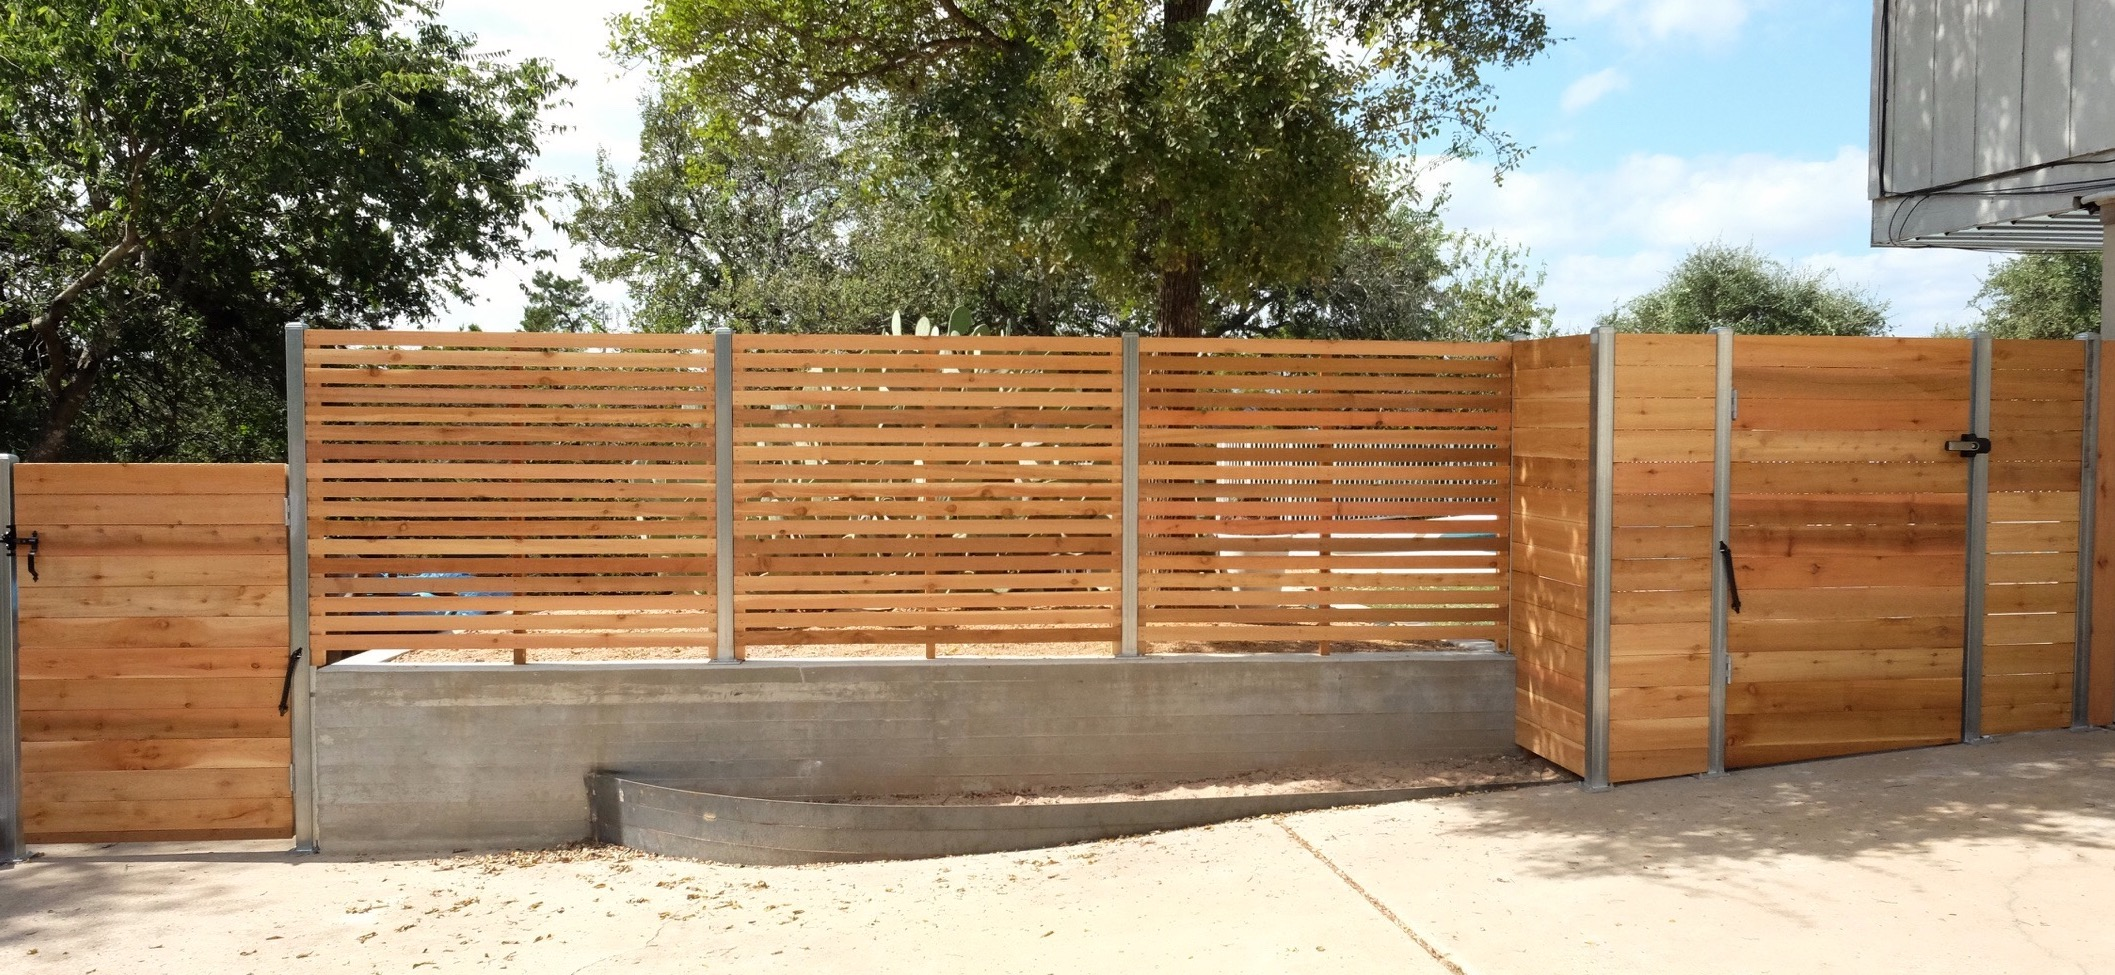 Austin brothers fence company quality fence installation horizontal fence with semi private sections and upgraded square steel post upgrade made by austin brothers fence co baanklon Images